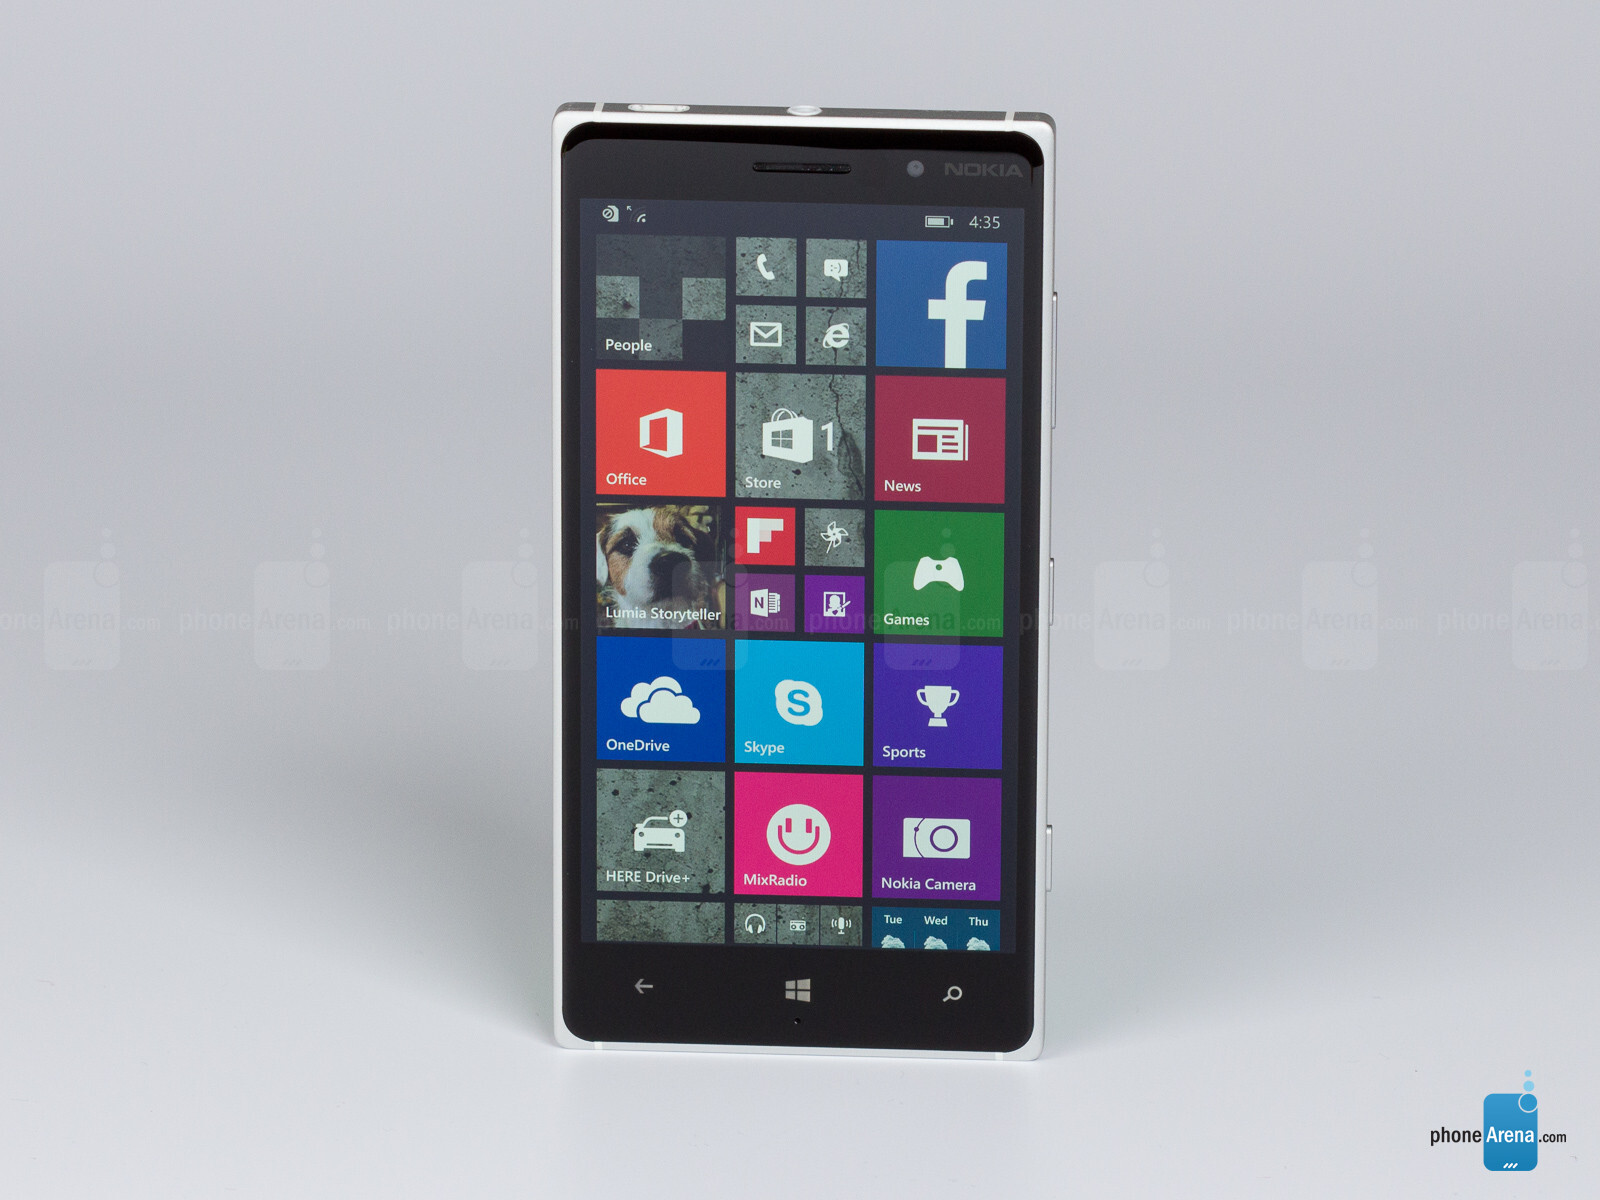 Nokia lumia 830 reviews - One Of The Thinnest Lumias Available The Colorful Polycarbonate 830 Feels Solid In The Hand Eschewing The Traditional Unibody With A Replaceable Battery